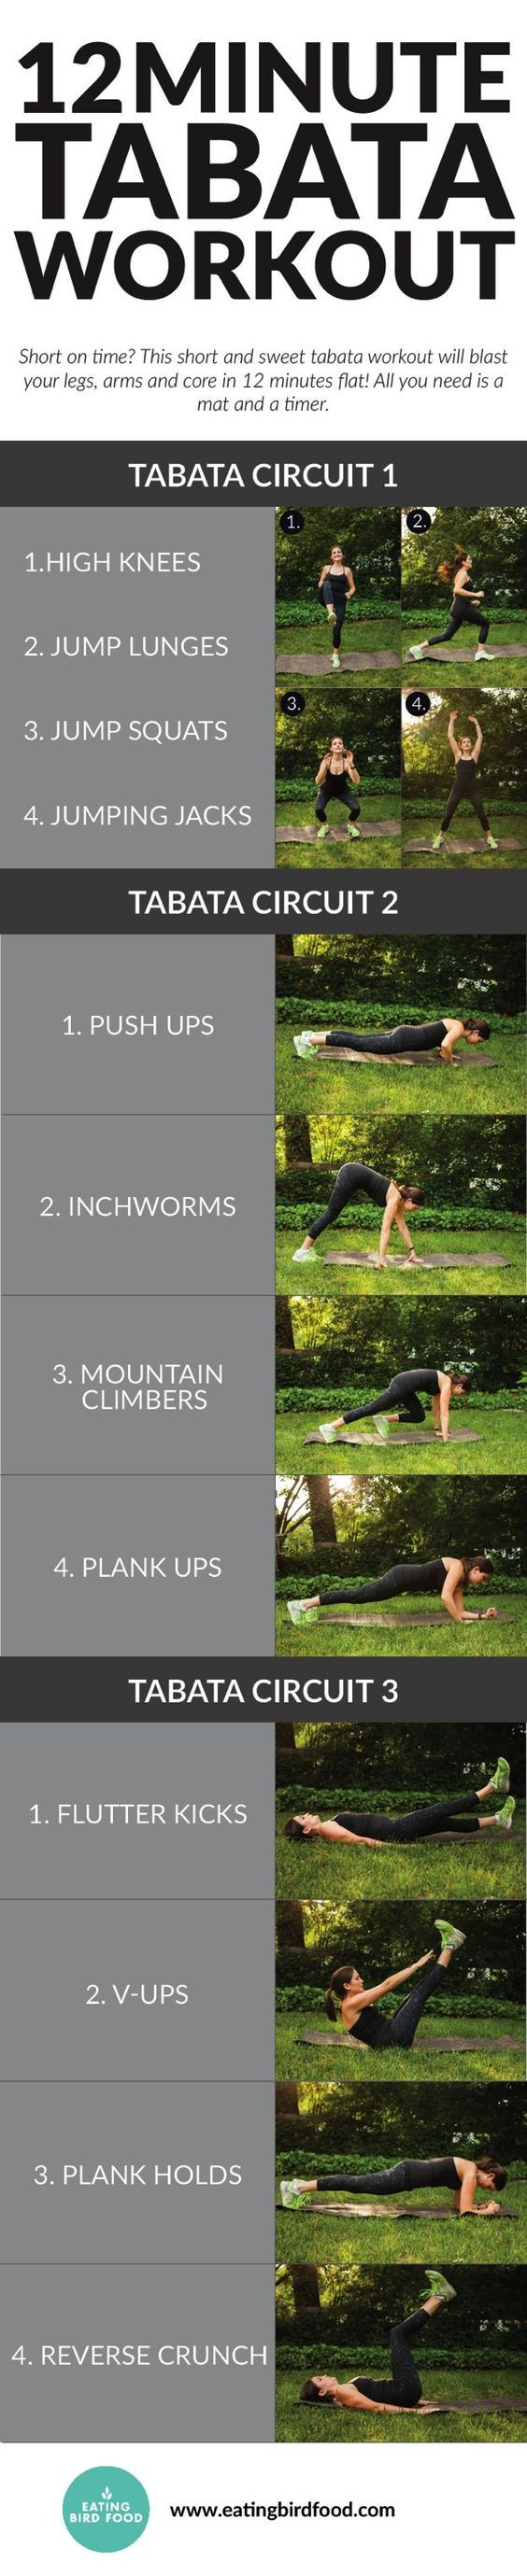 12 Minute Tabata Workout that works your legs, arms and core! Tried this...about died but great workout!